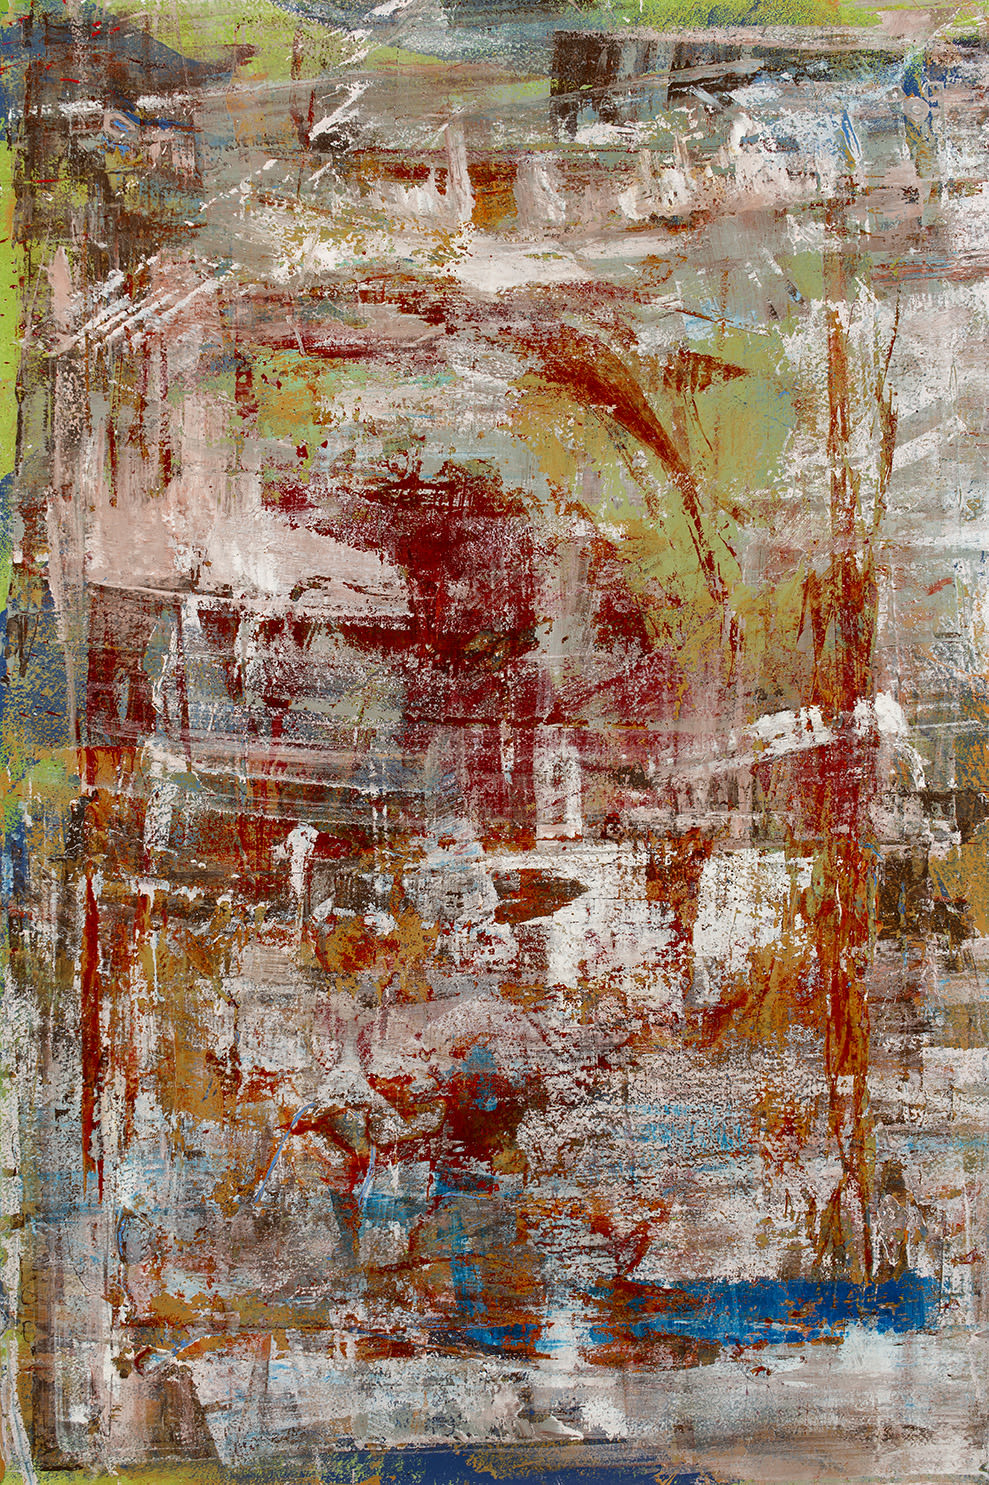 """<span class=""""link fancybox-details-link""""><a href=""""/artworks/categories/5/1869-emilio-diiorio-untitled-2-of-6-in-series-2017/"""">View Detail Page</a></span><div class=""""artist""""><strong>Emilio DiIorio</strong></div> <div class=""""title""""><em>Untitled (2 of 6 in series)</em>, 2017</div> <div class=""""medium"""">Acrylic on panel</div> <div class=""""dimensions"""">48 x 32 in<br /> 121.9 x 81.3 cm</div>"""